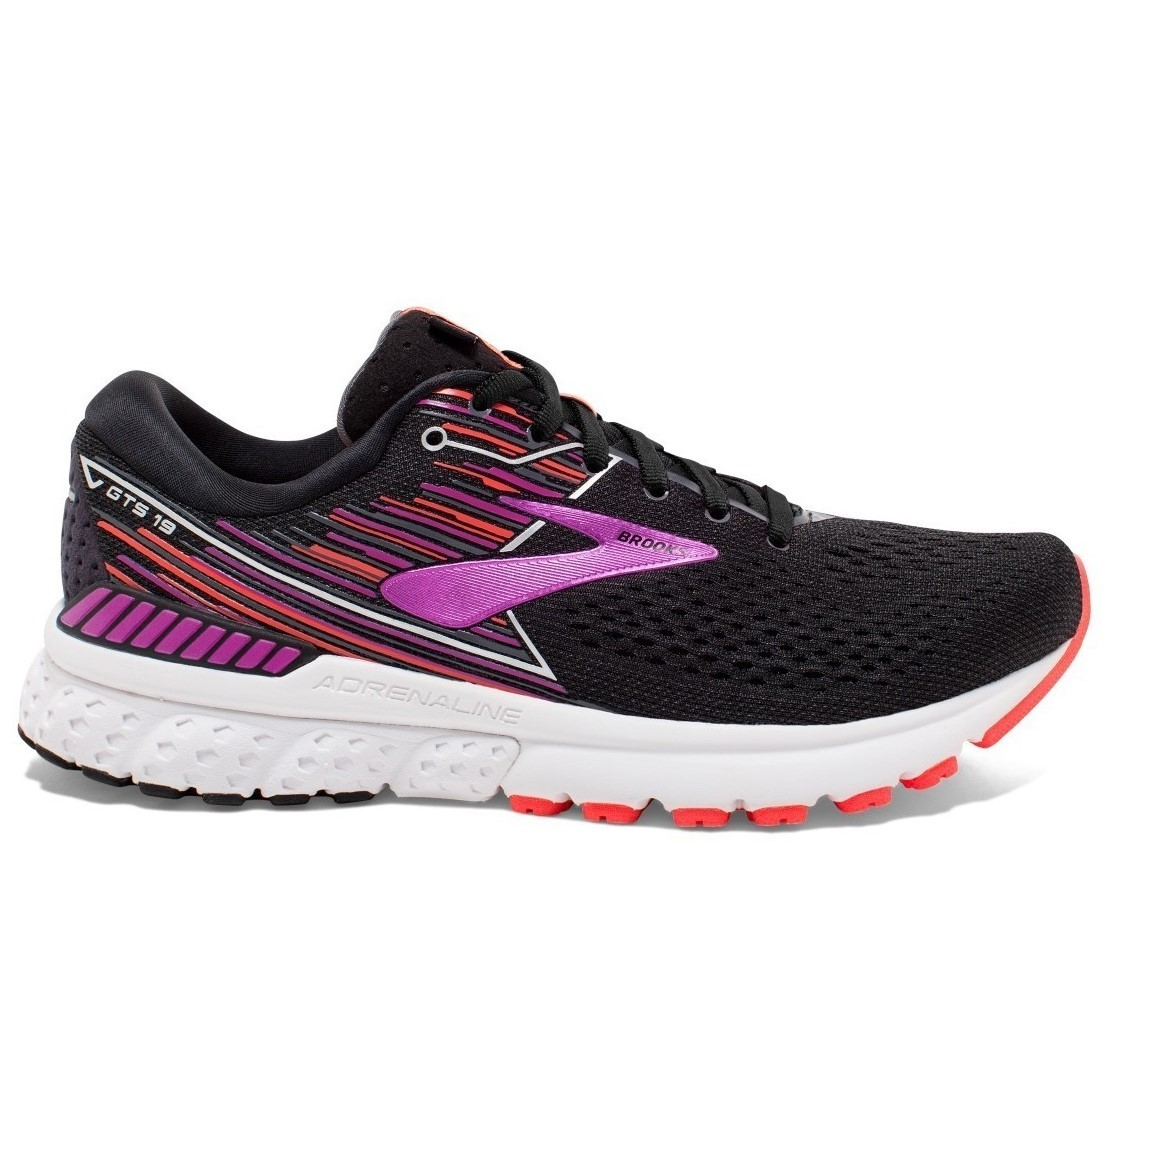 805258b0da4c Brooks Adrenaline GTS 19 - Womens Running Shoes - Black Purple Coral ...